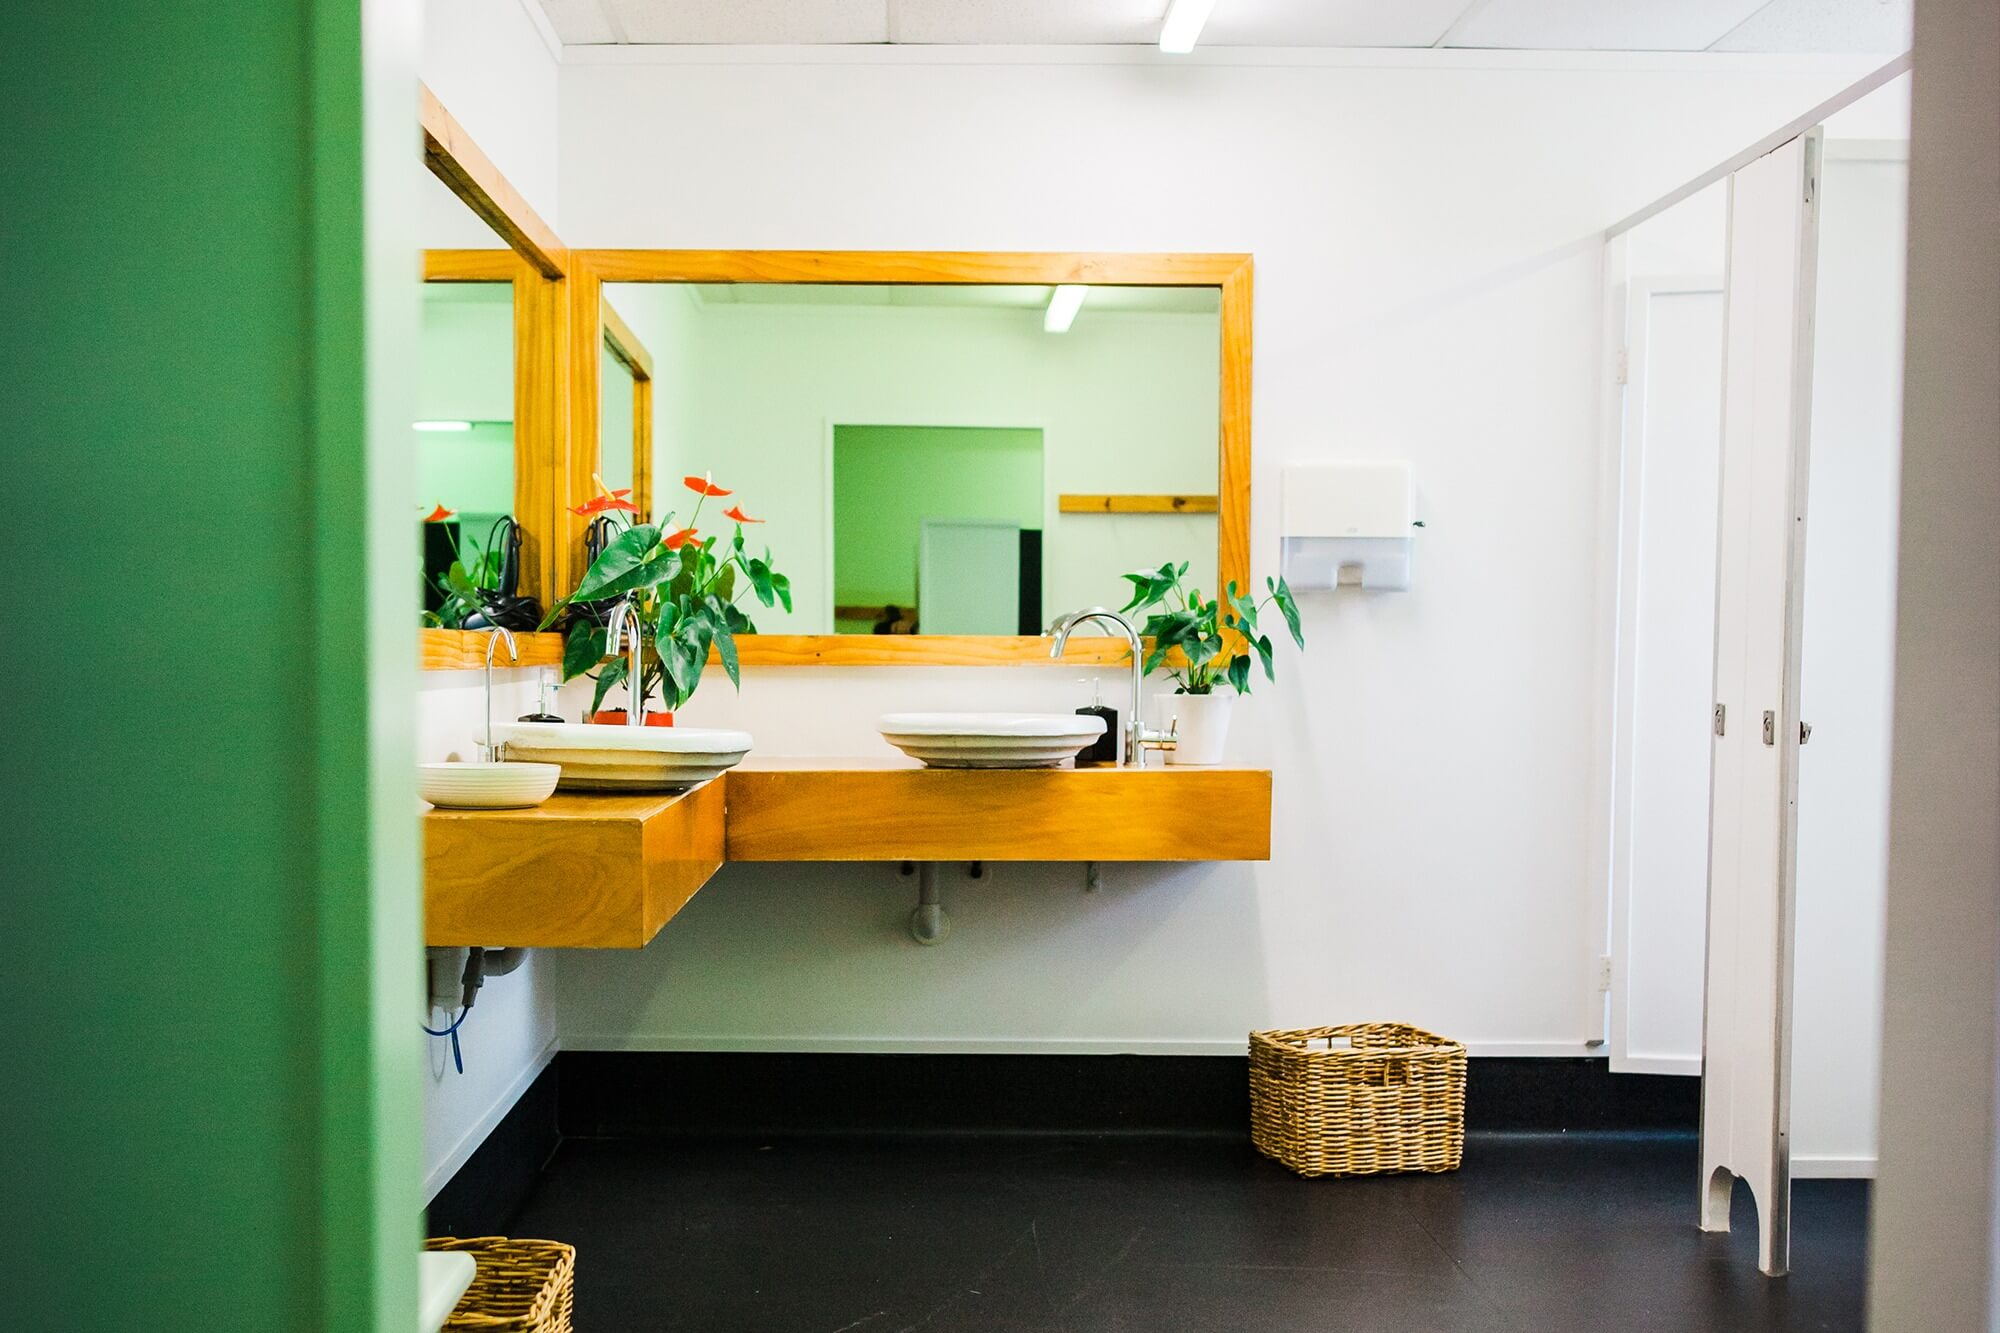 We have clean changing facilities in our yoga studio.